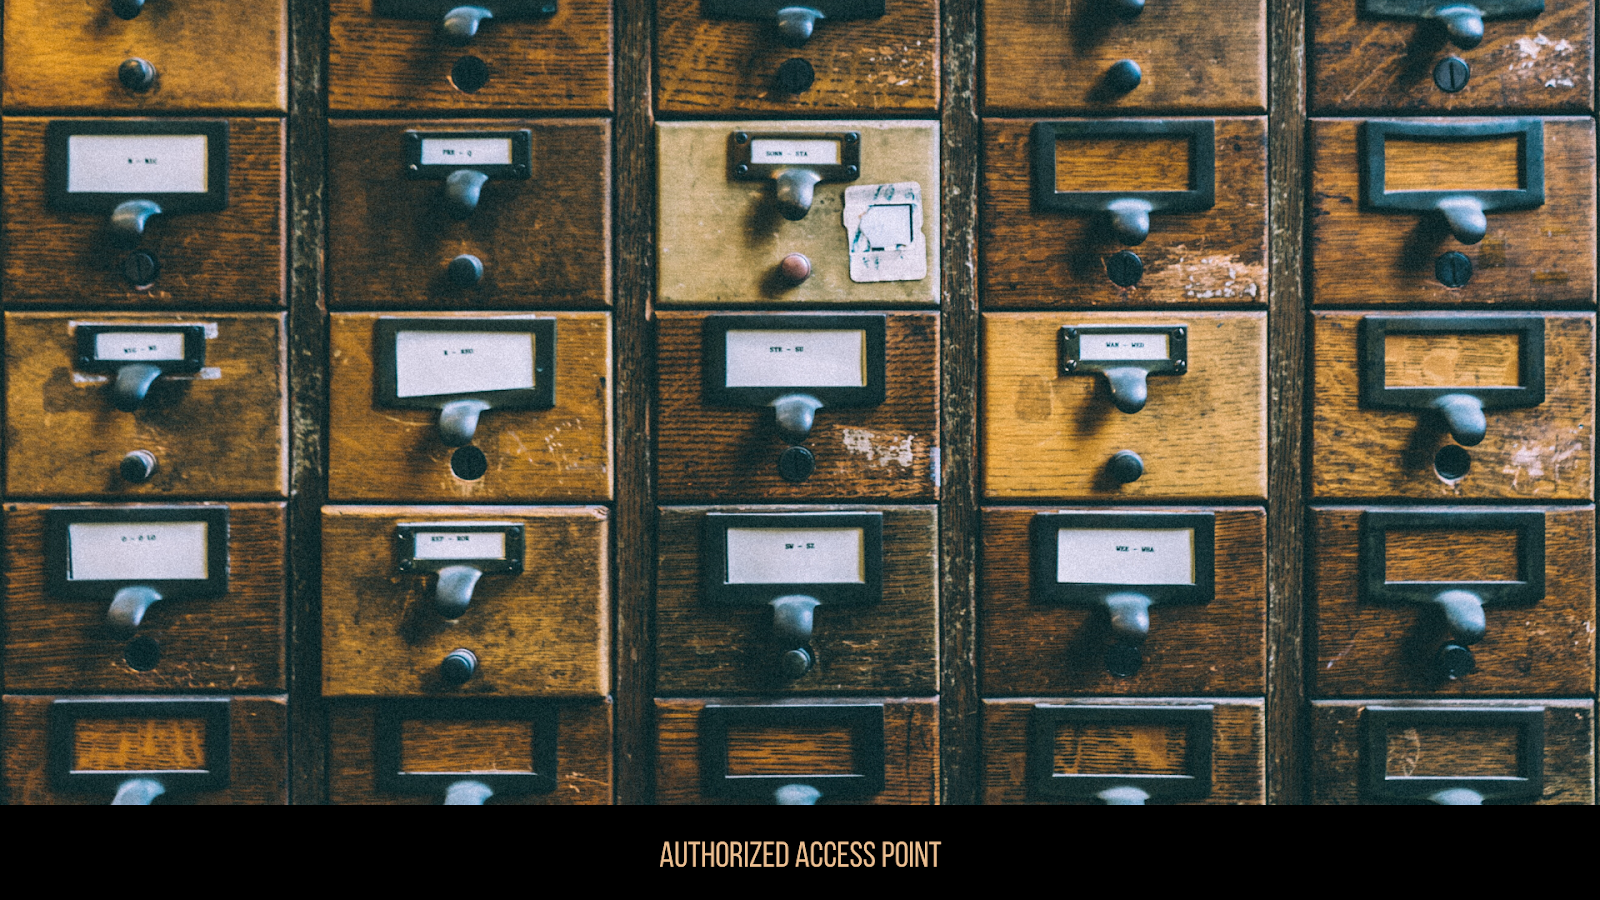 Authorized Access Point